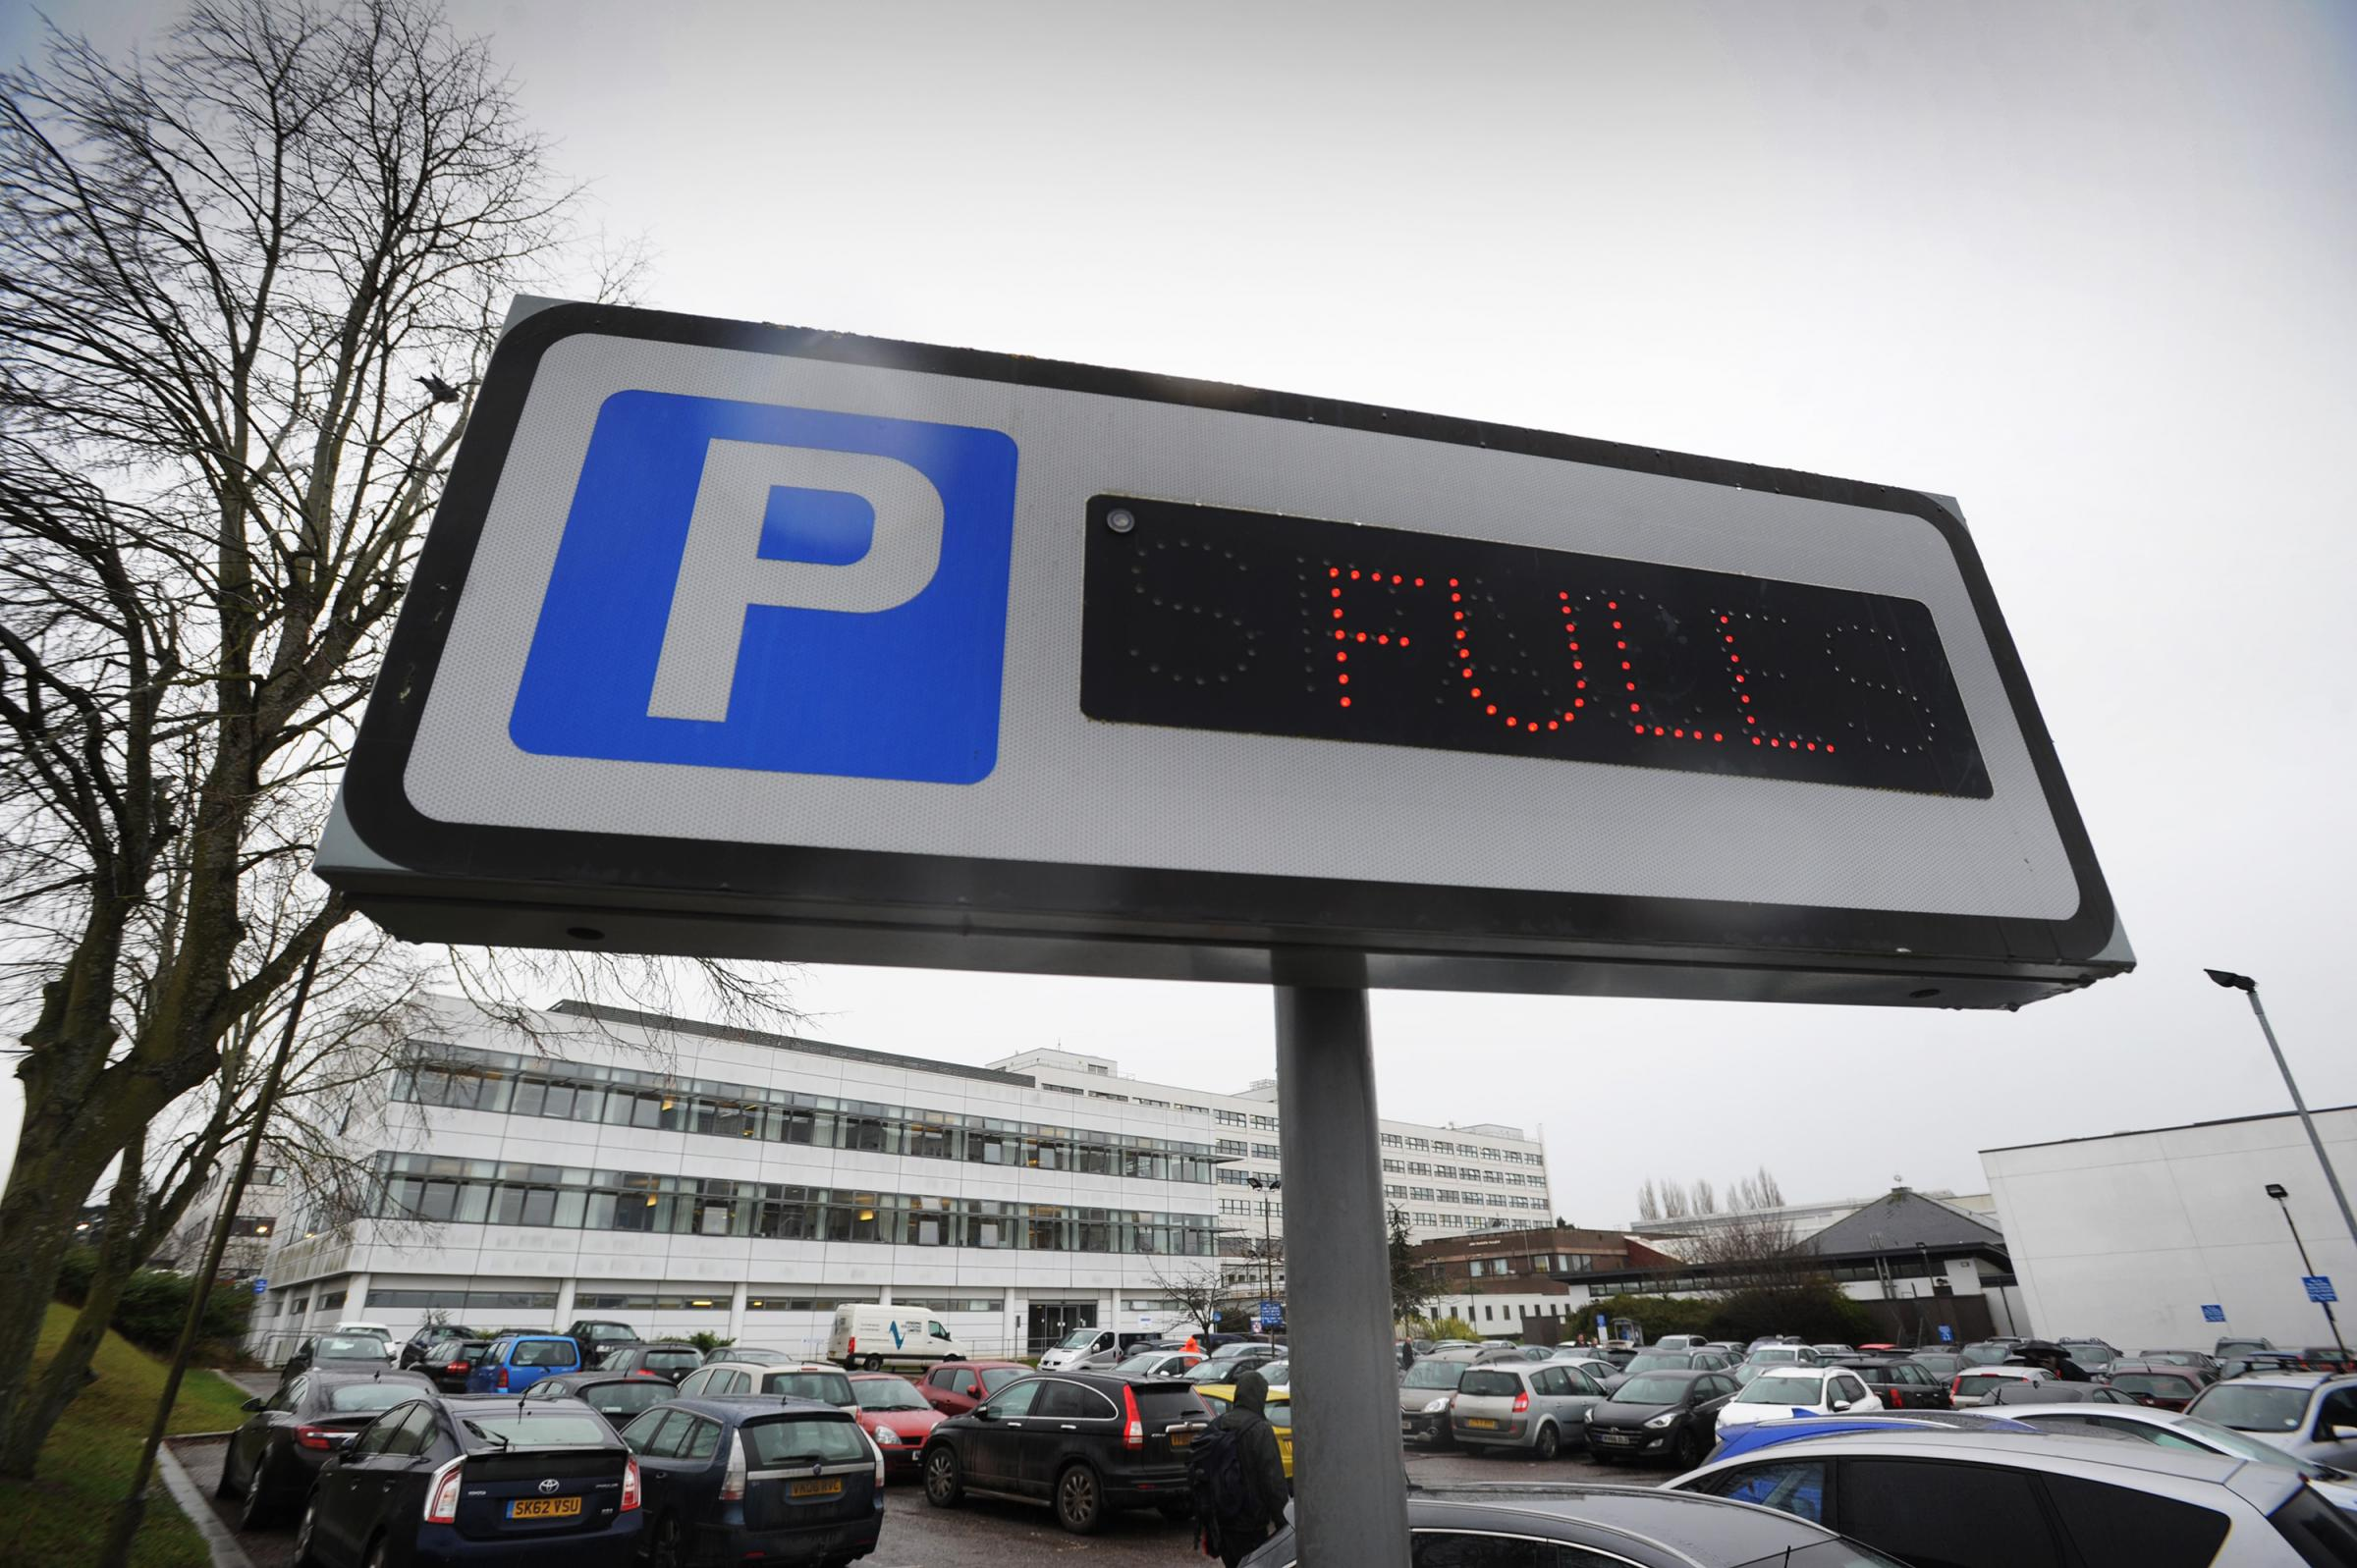 Hospital parking signs. Pic: Damian Halliwell